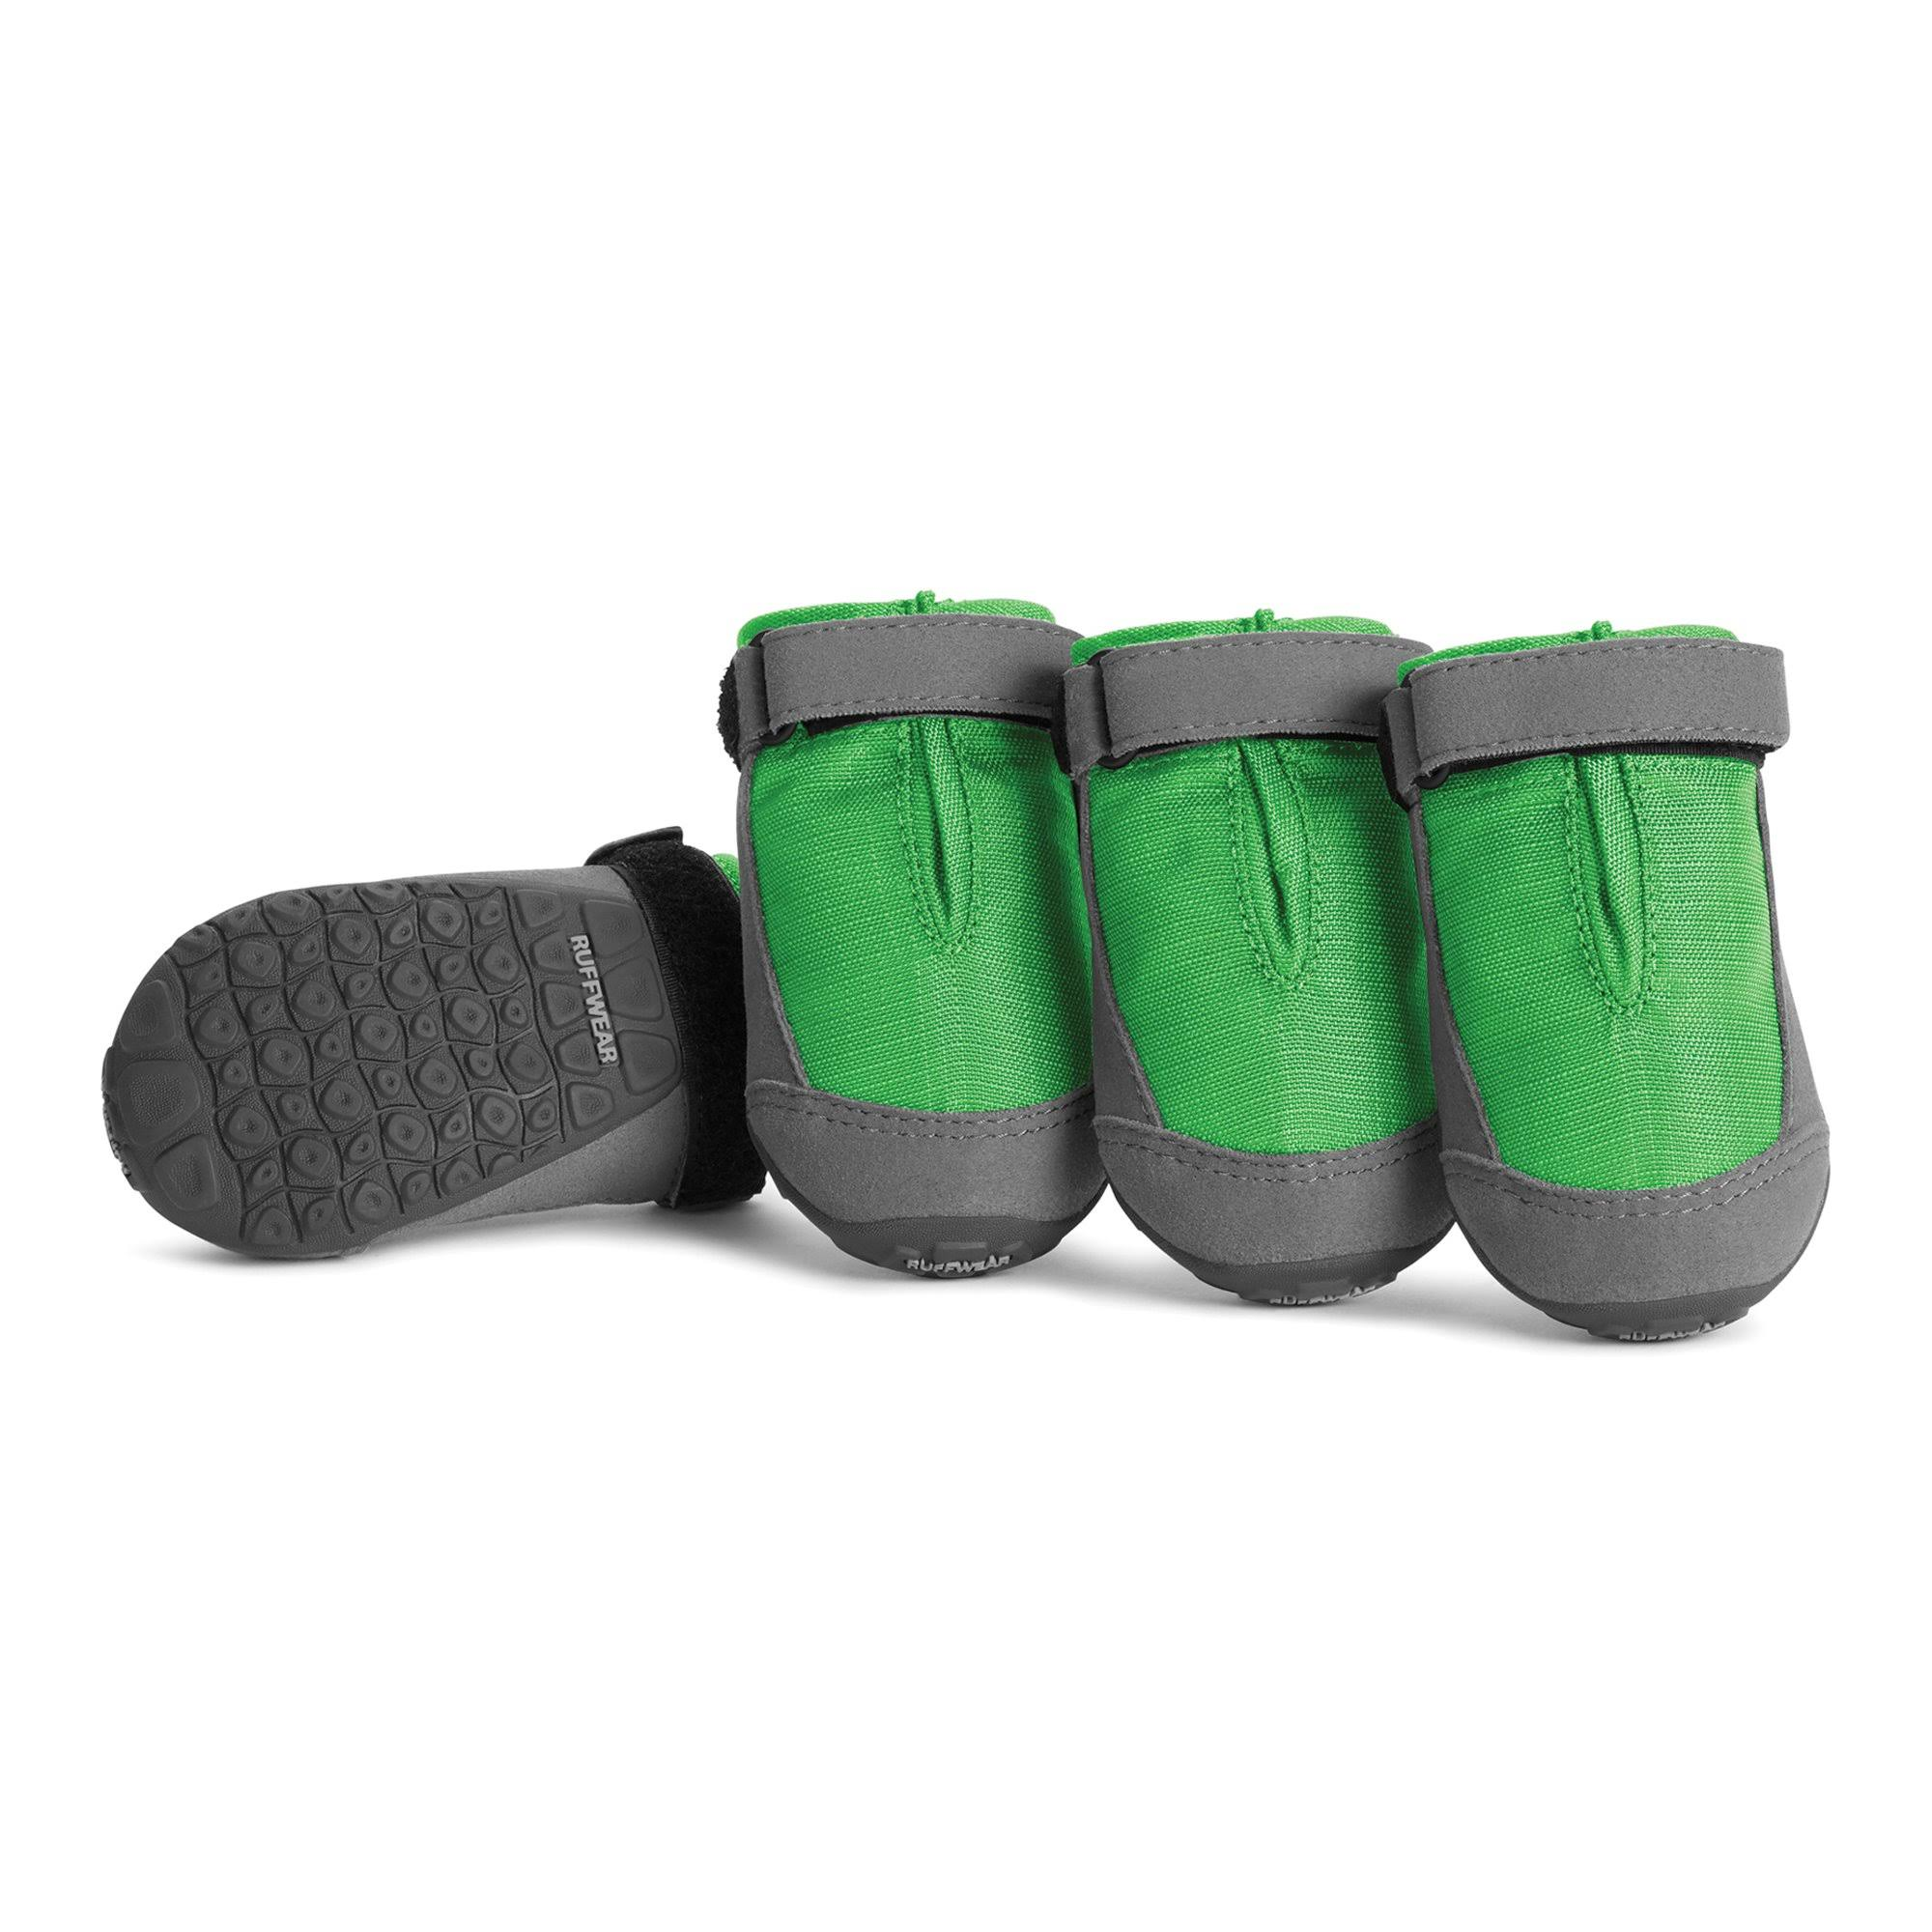 Ruffwear Summit Trex Dog Shoe - Meadow Green, 70mm